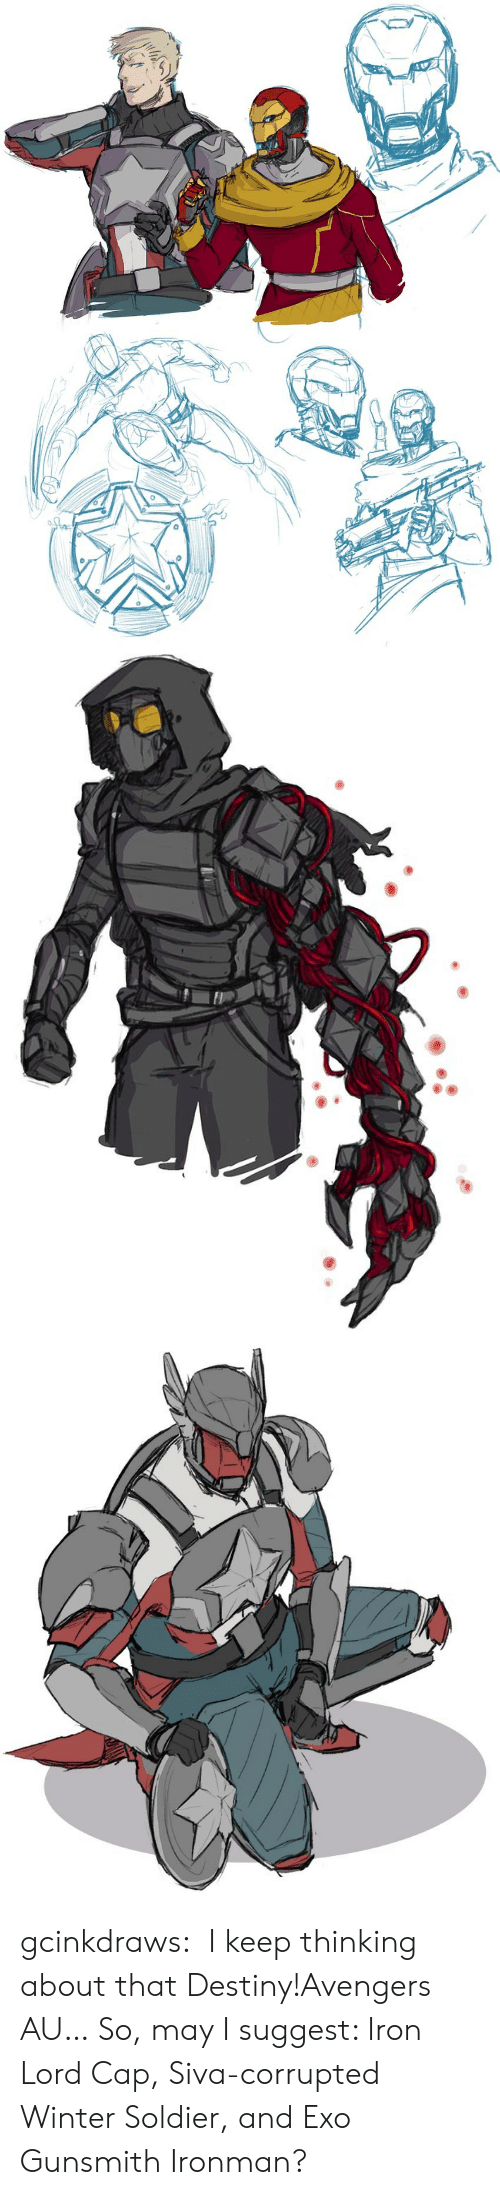 Destiny, Tumblr, and Winter: gcinkdraws:  I keep thinking about that Destiny!Avengers AU…So, may I suggest: Iron Lord Cap, Siva-corrupted Winter Soldier, and Exo Gunsmith Ironman?